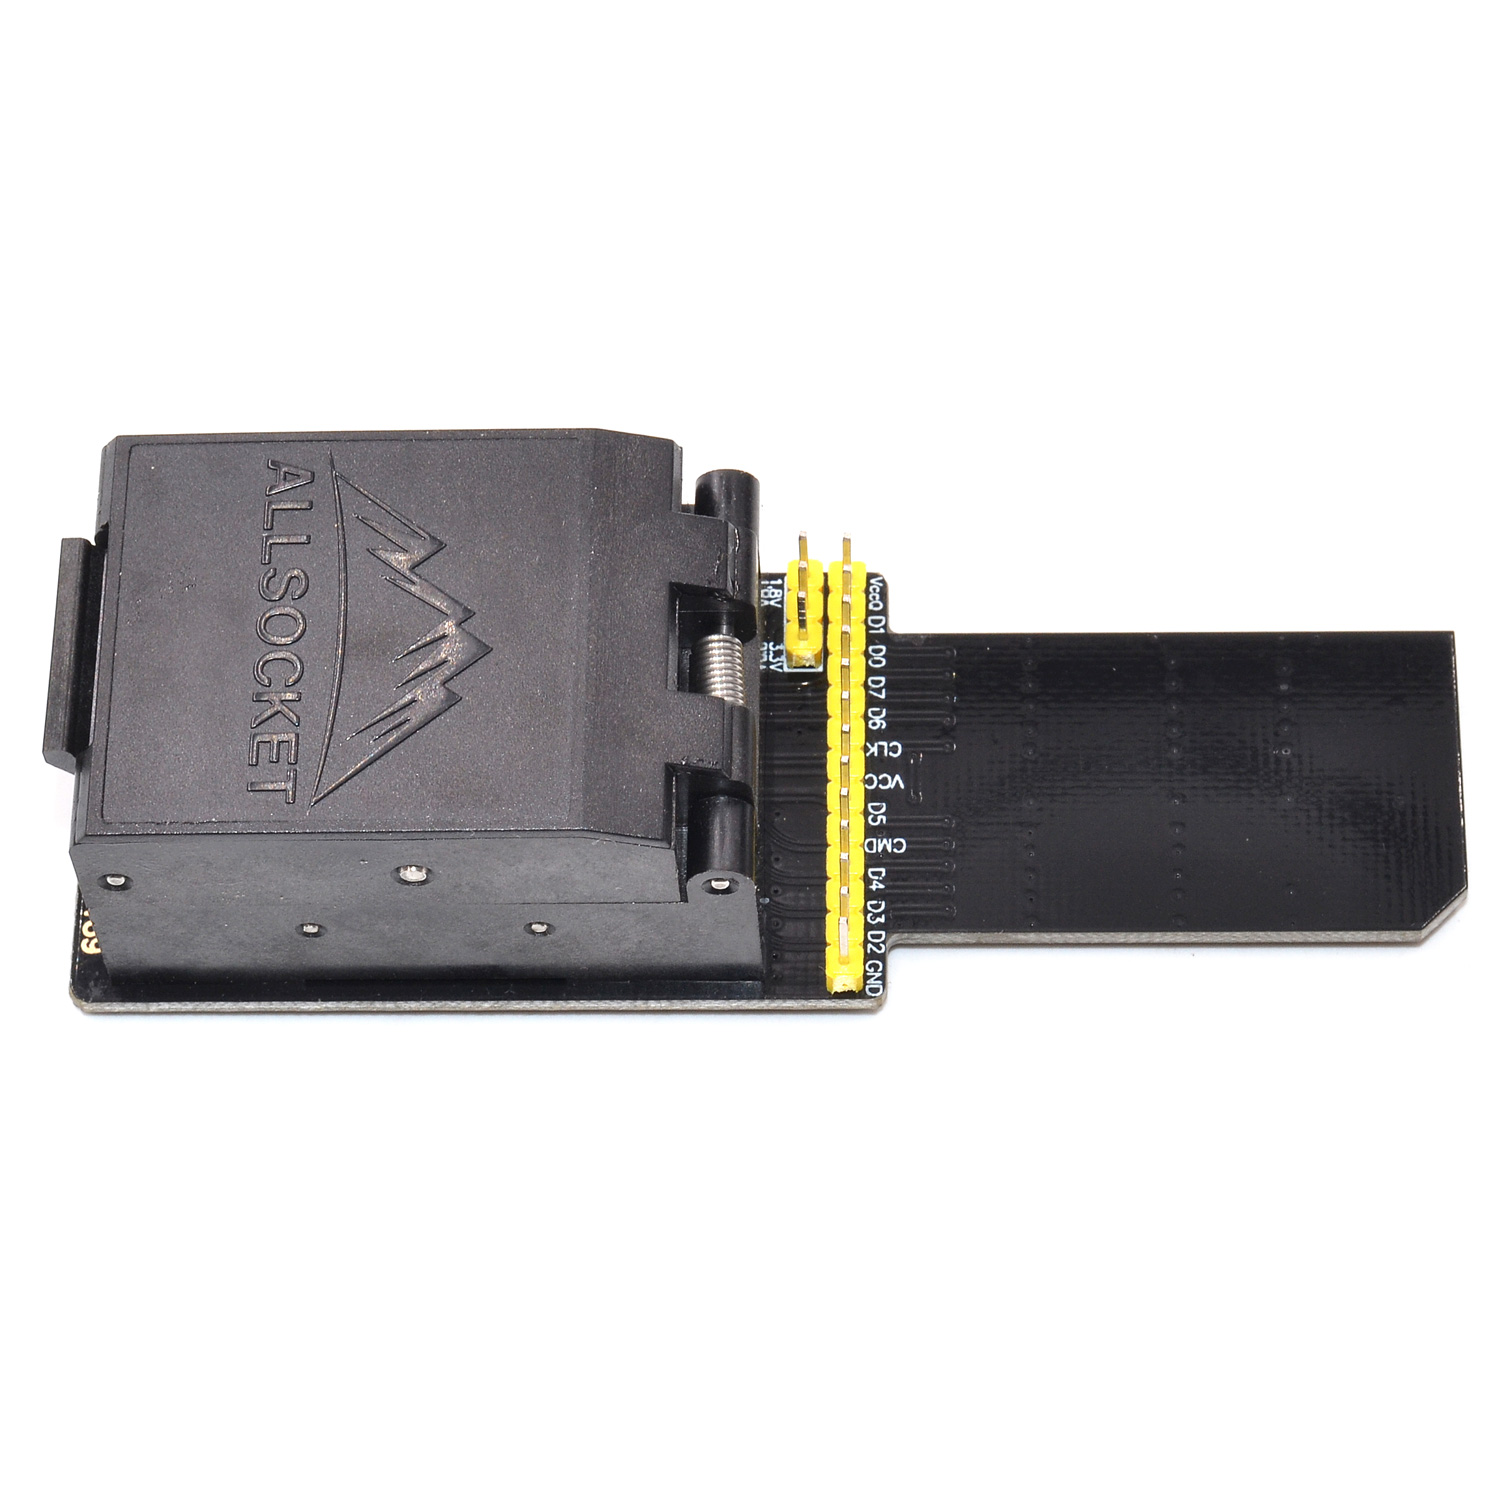 eMCP-BGA/eMCP221 Socket eMCP221 reader Socket DS3000-SD-emcp221 Socket High quality IC eMCP221 reader for eMCP/BGA/eMCP221 package 12